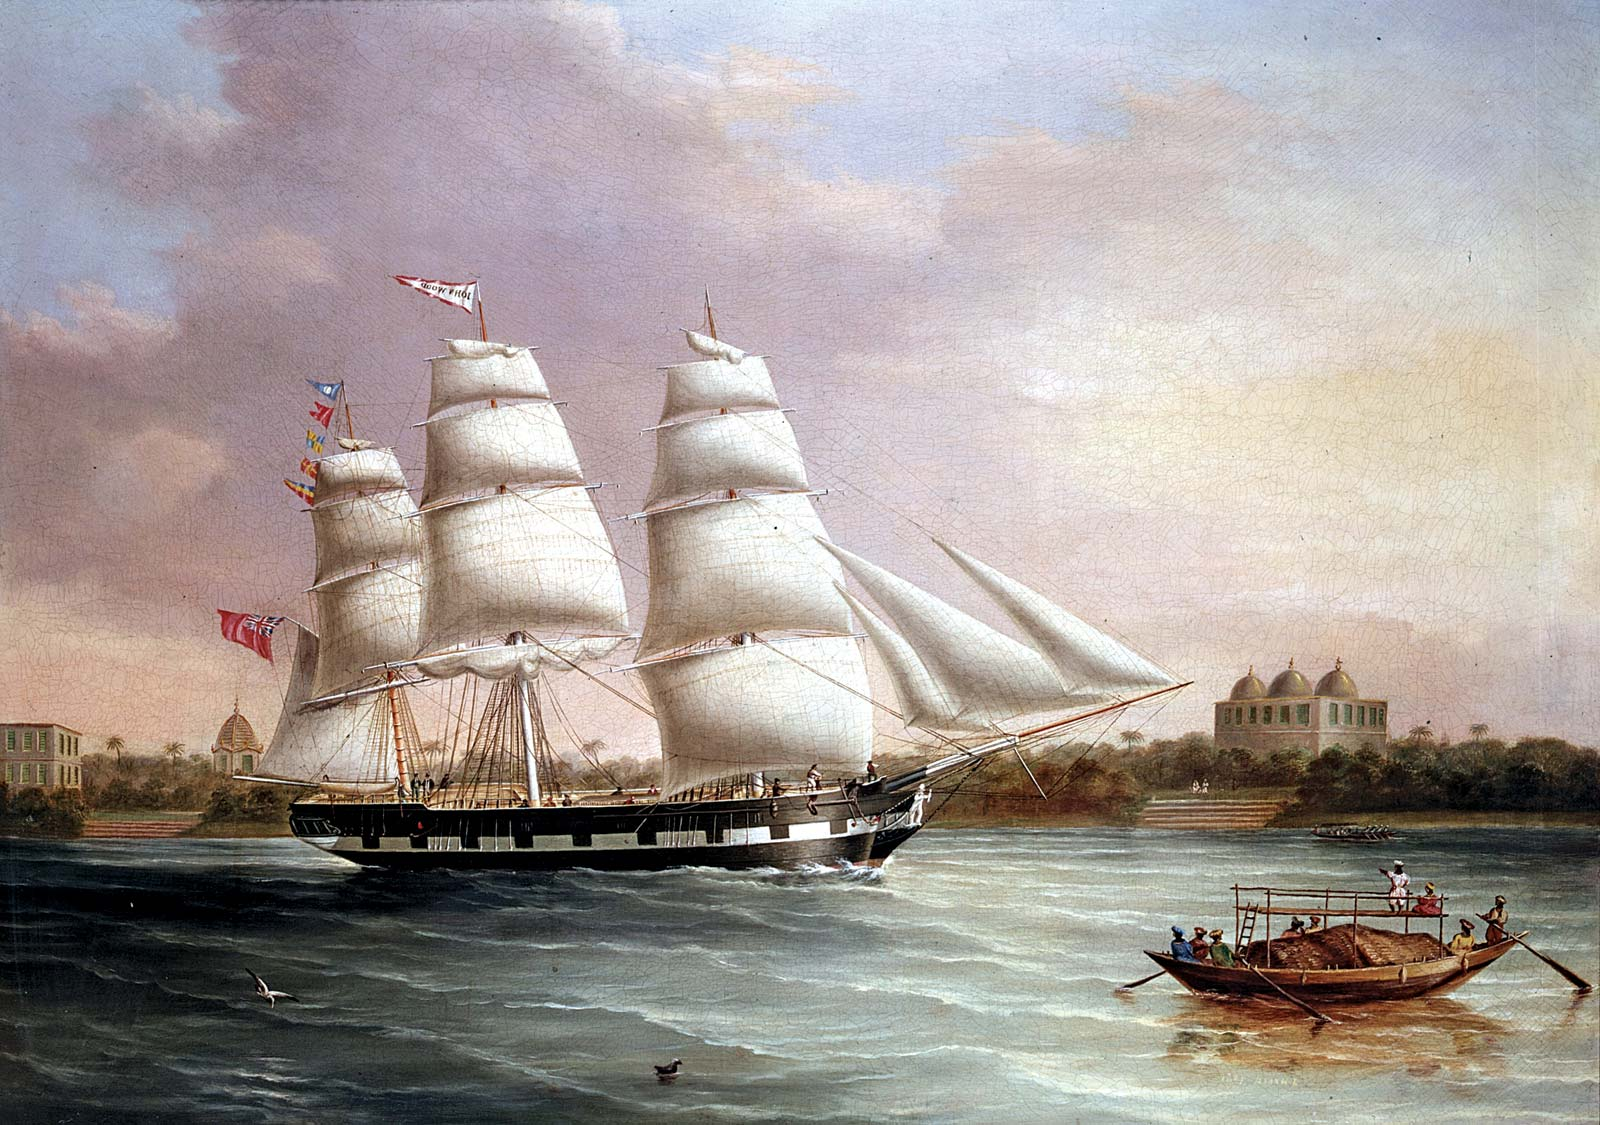 Bombay country ship